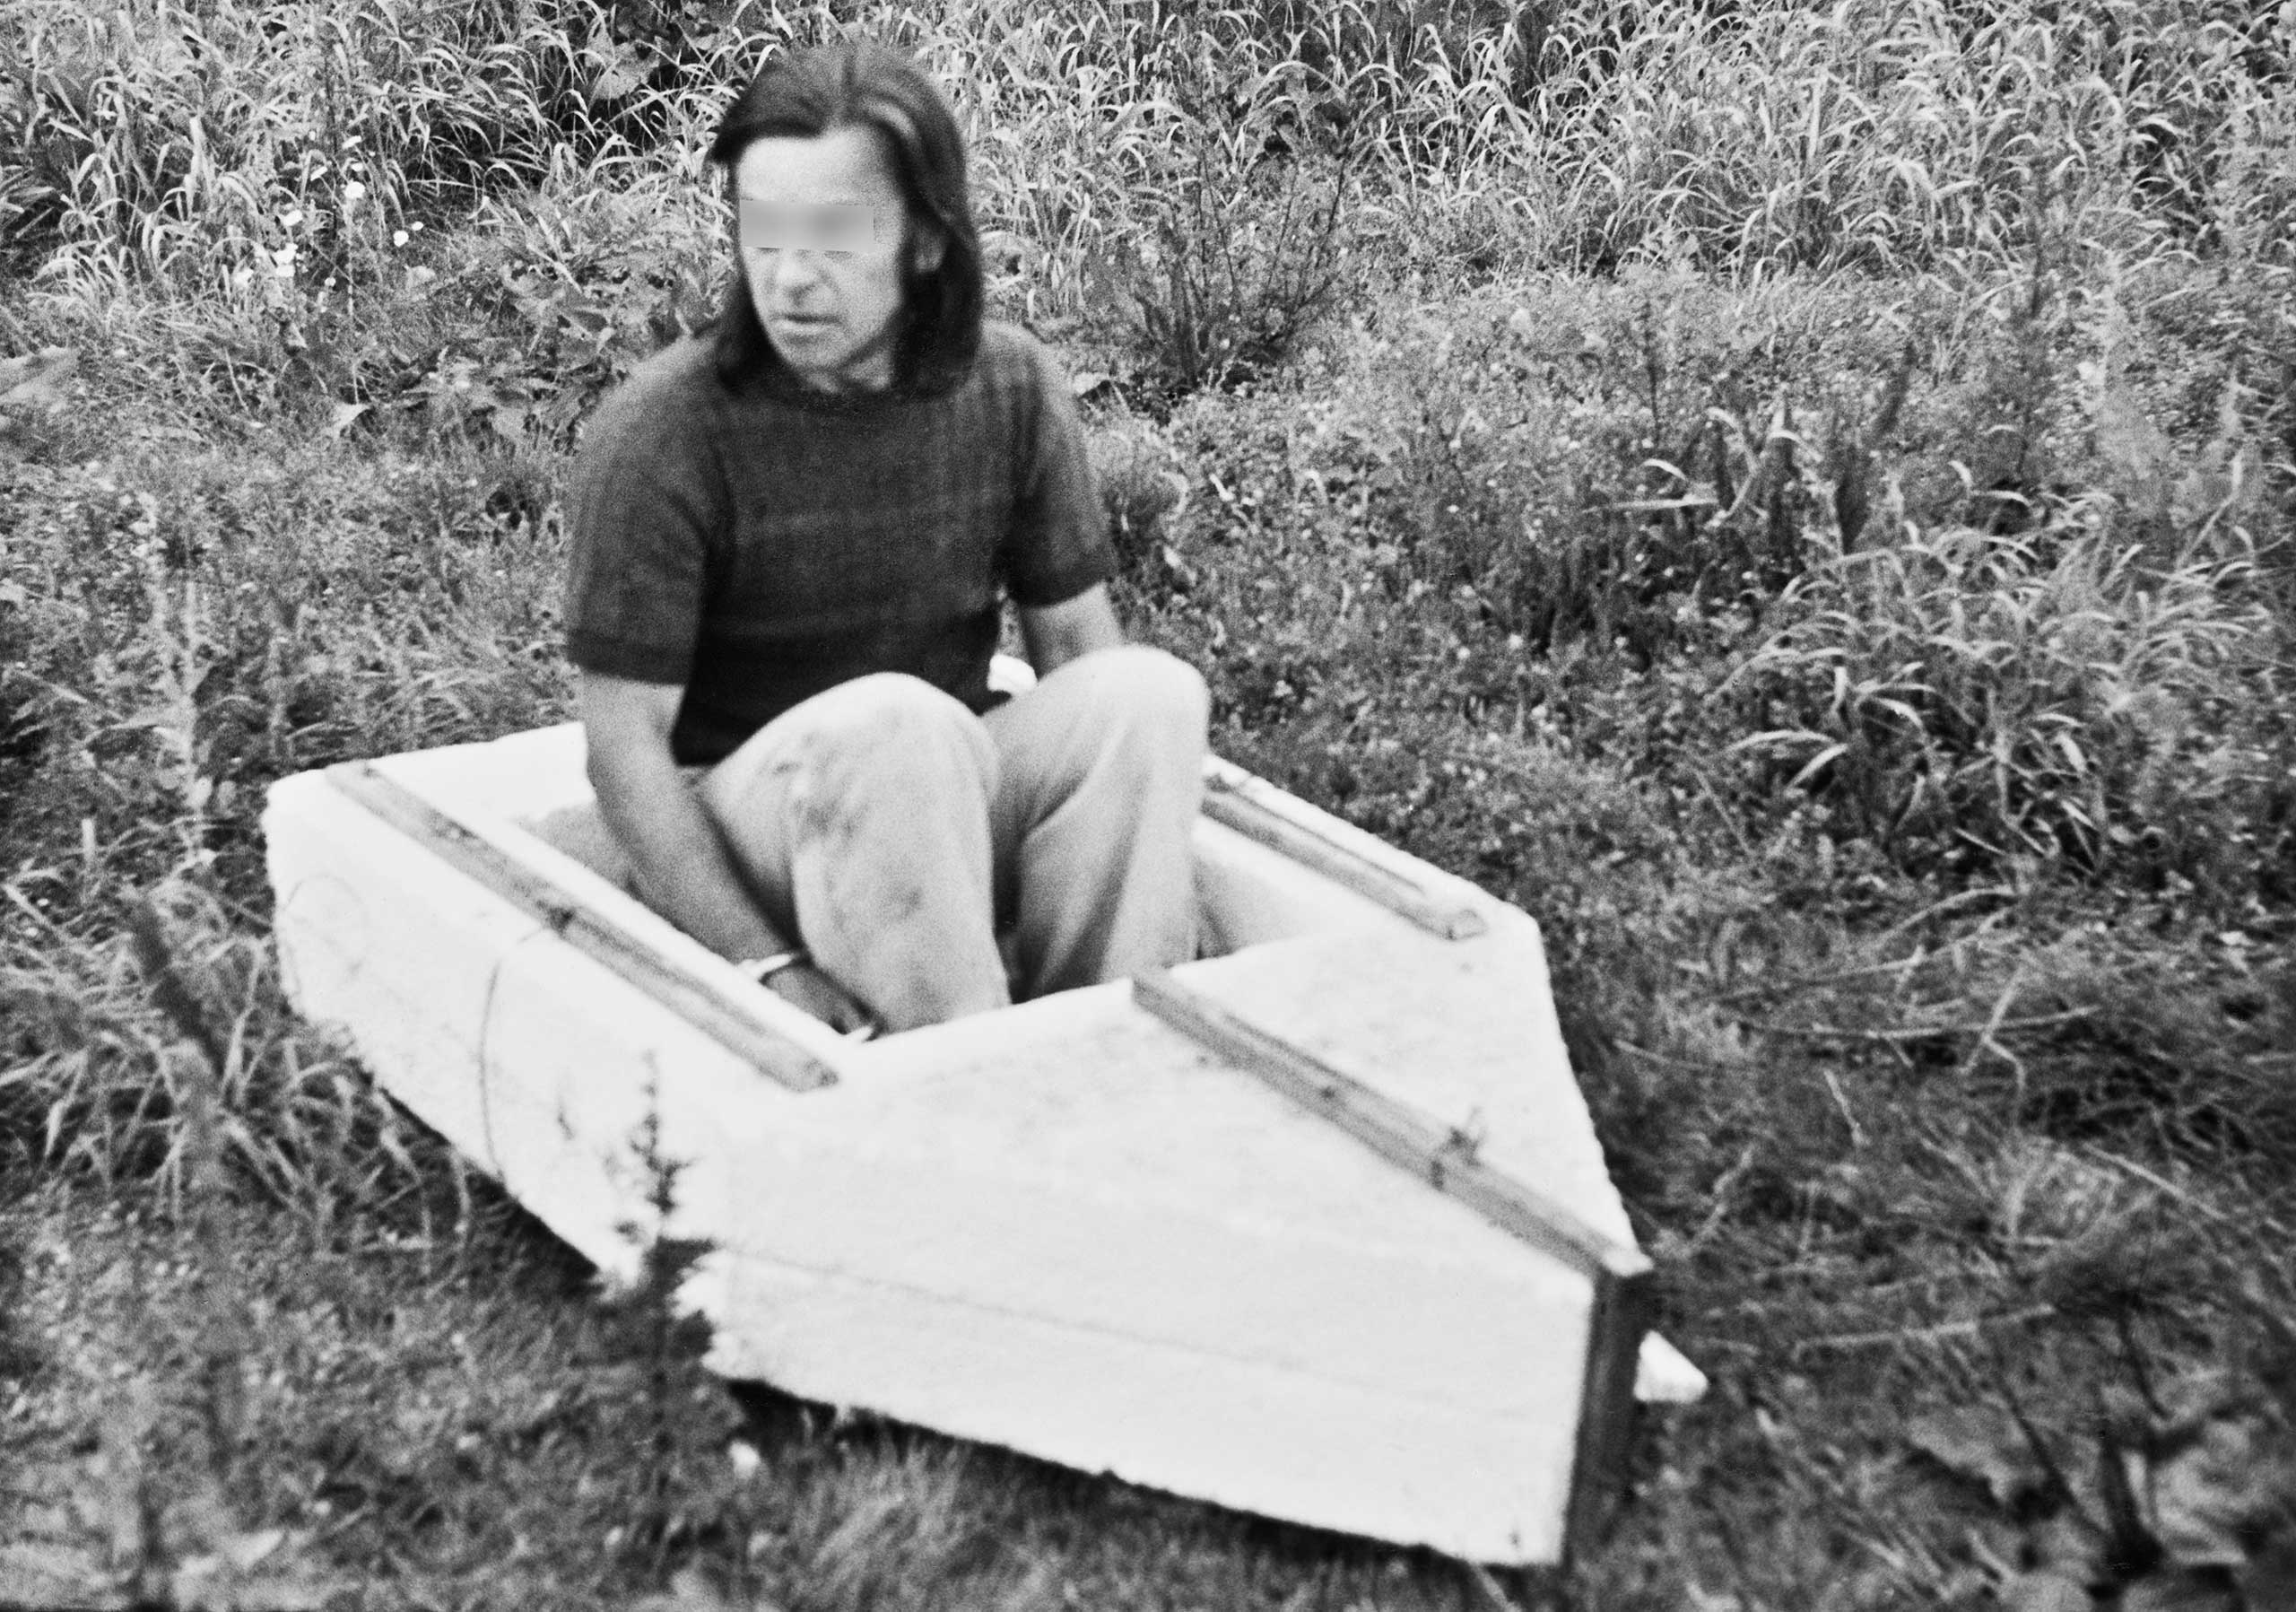 Reenactment of an escape attempt in a homemade raft of polystyrene slabs, nylon string, and wooden boards, with which a man wanted to flee via the Baltic coastal resort of Boltenhagen on July 9, 1981, because he was afraid of criminal prosecution. He was apprehended in the border area before reaching the coast.